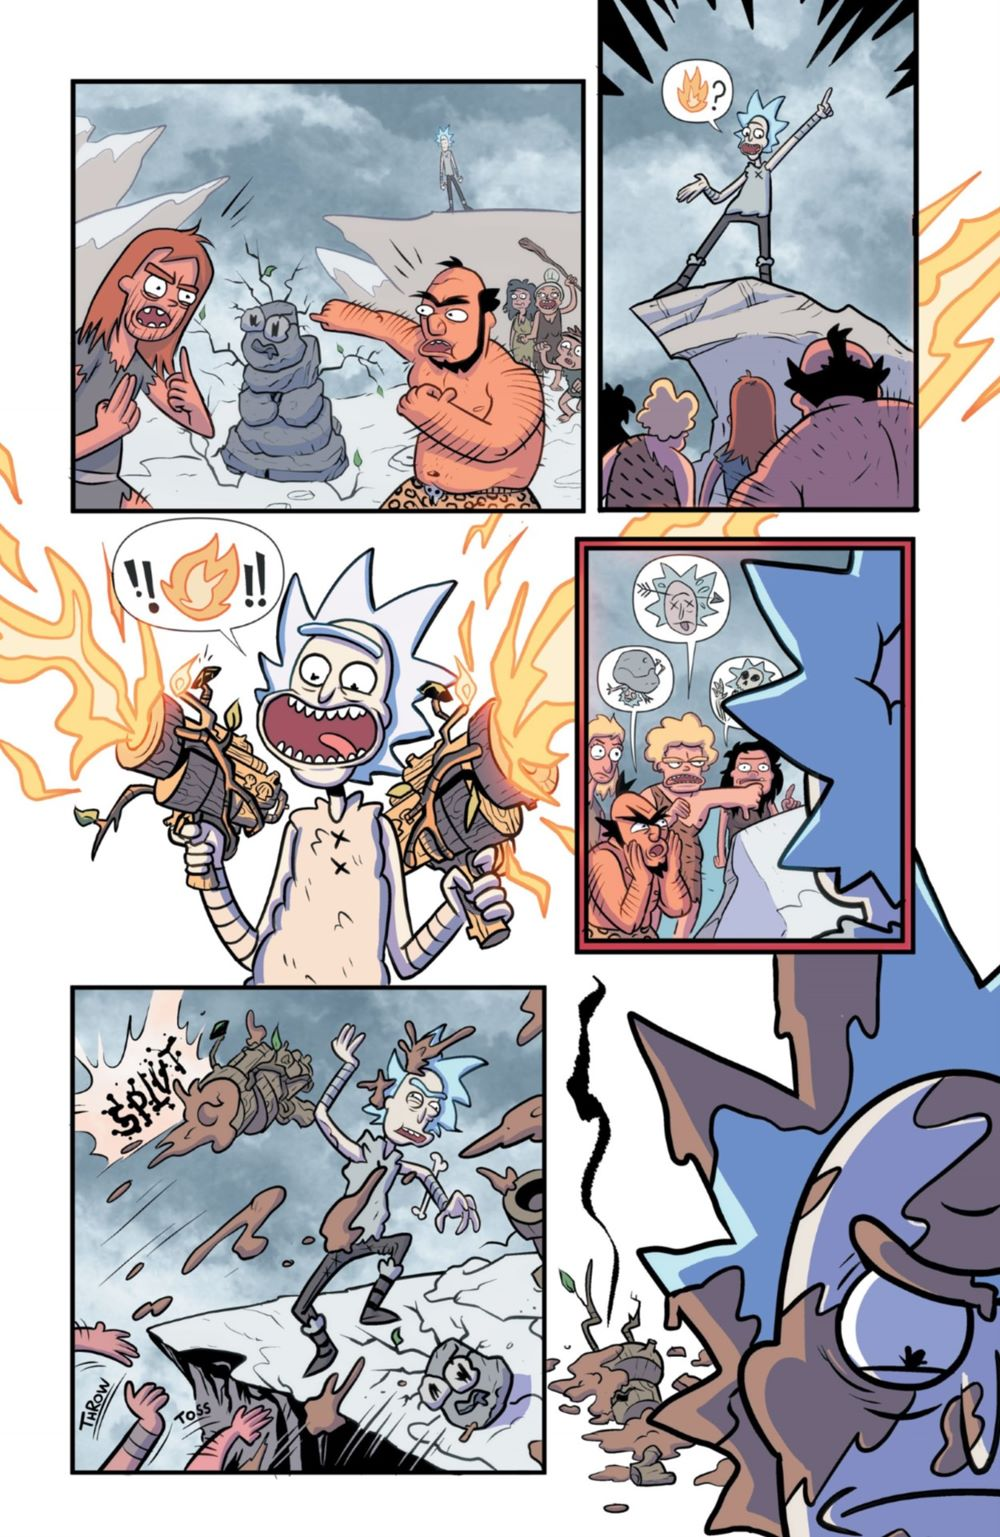 RM-RNH-1-MARKETING-09 ComicList Previews: RICK AND MORTY RICK'S NEW HAT #1